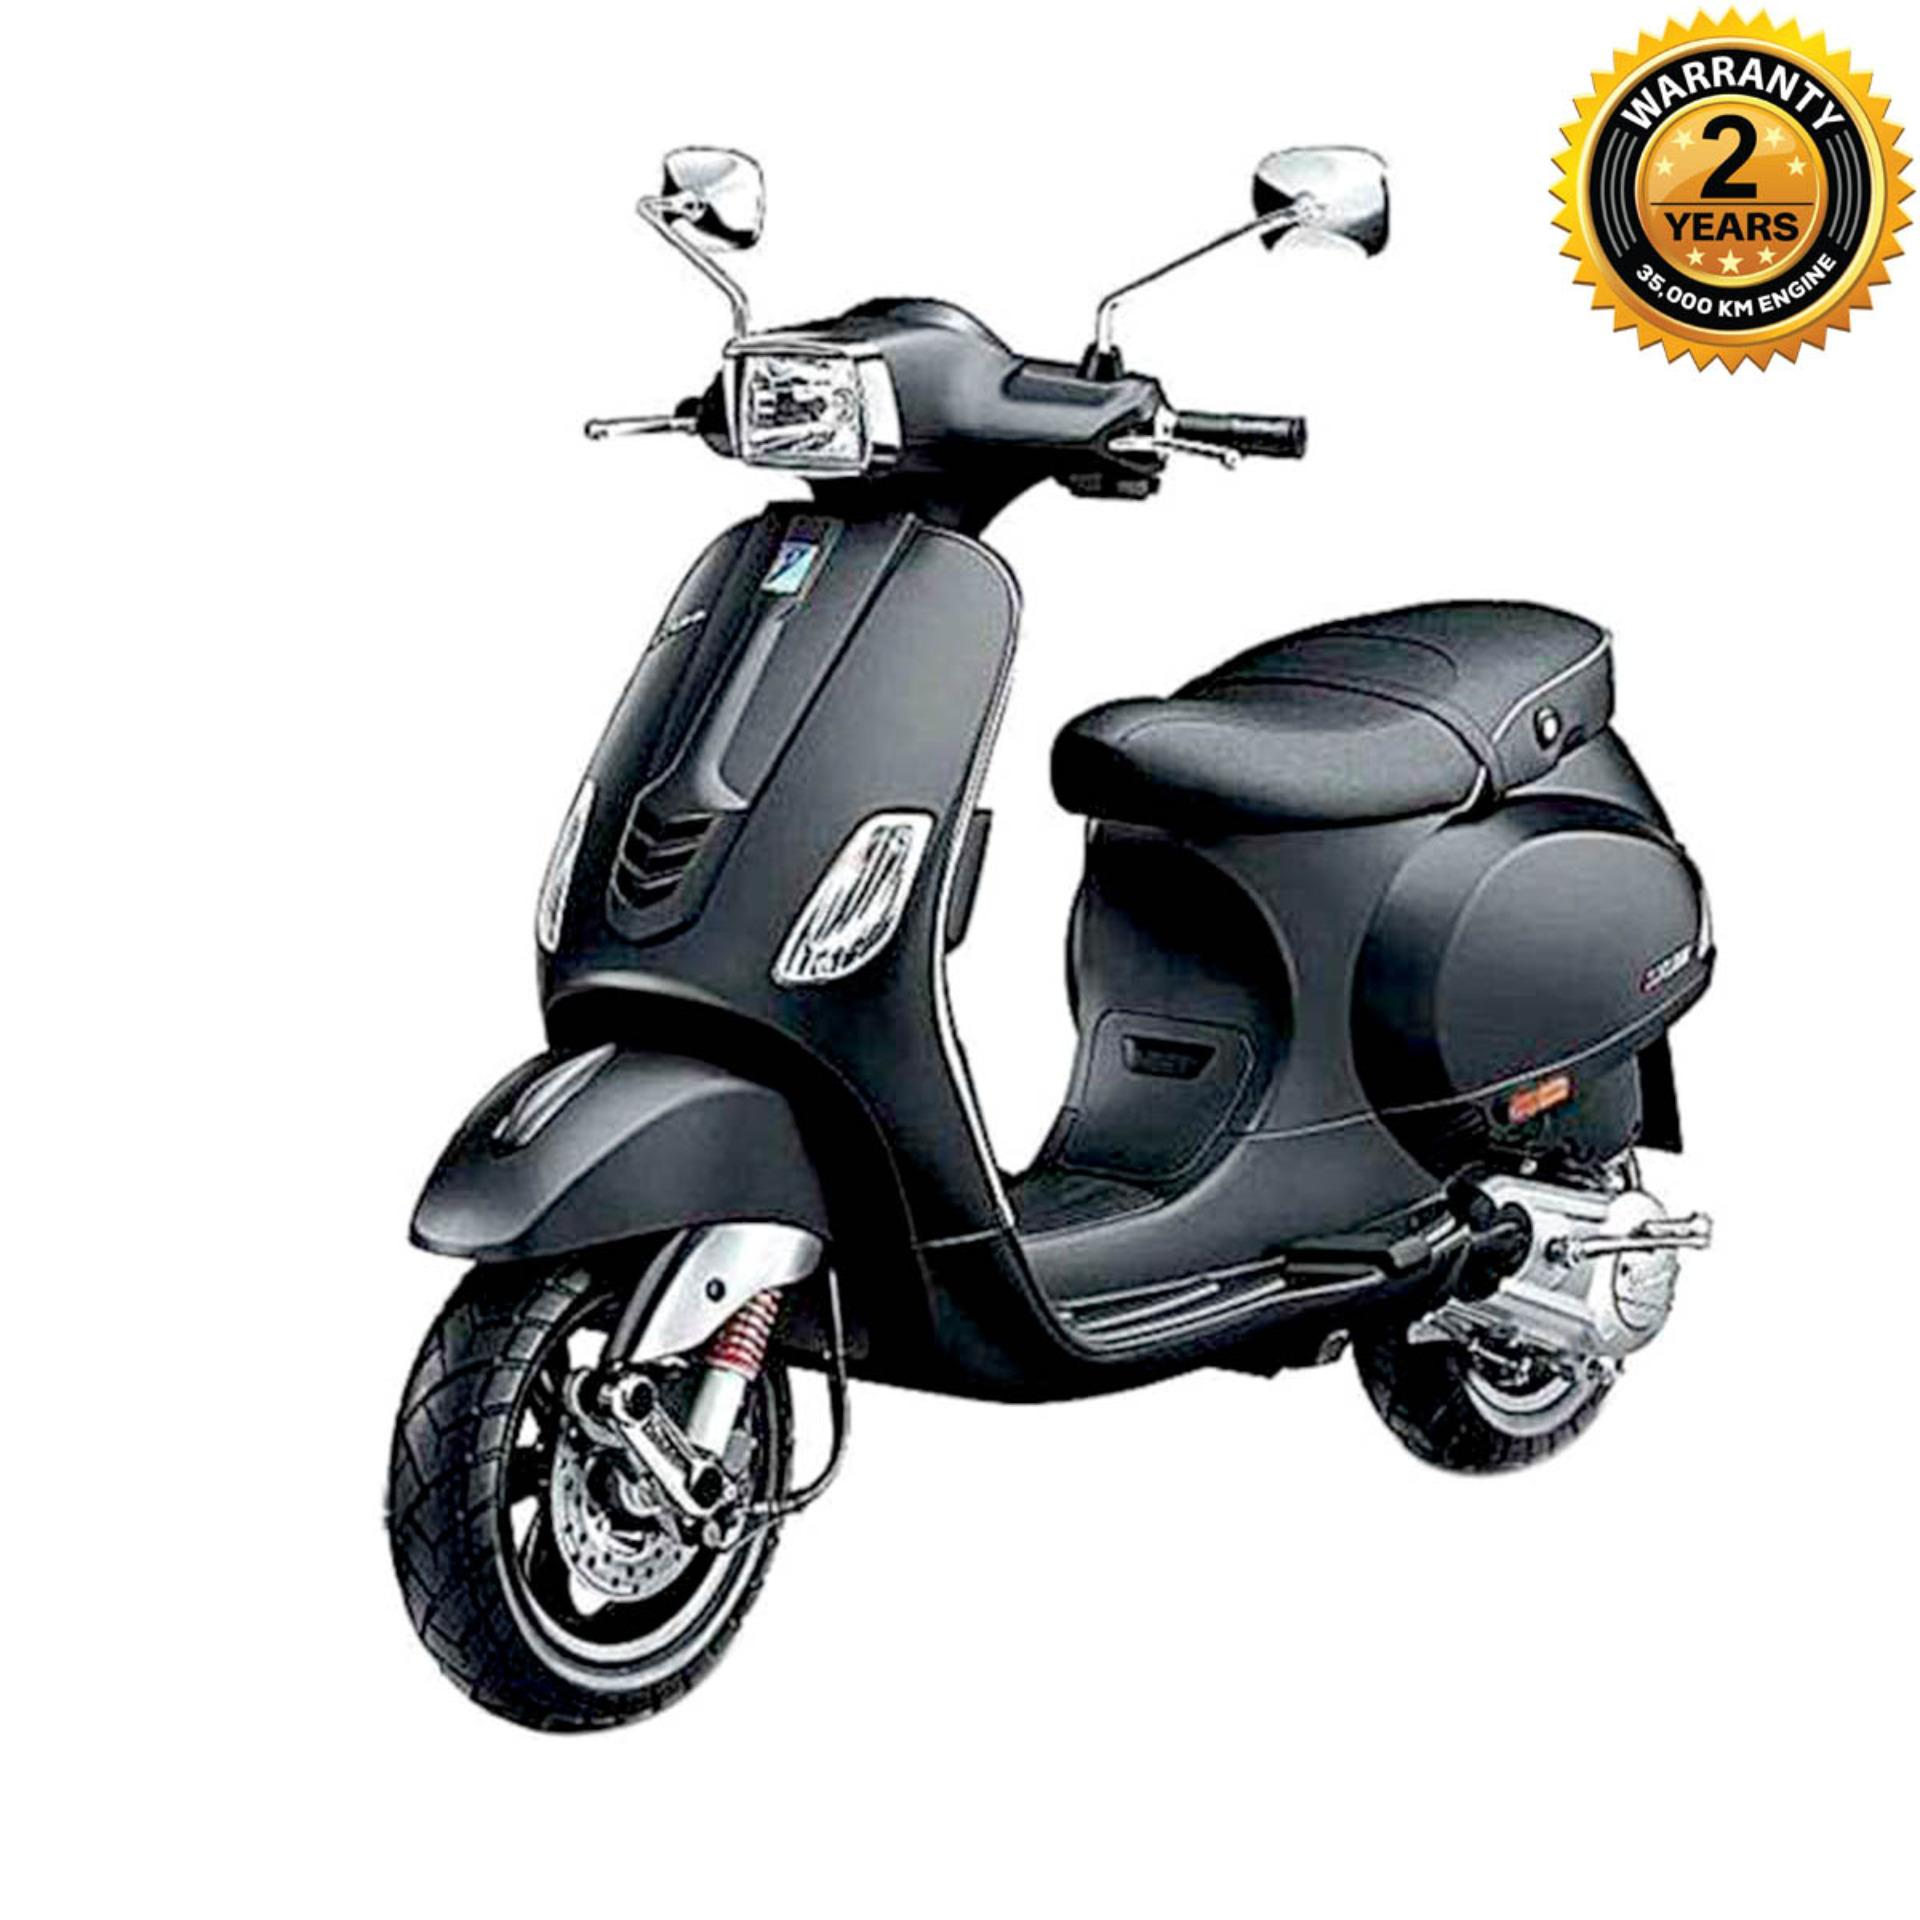 SXL125 125cc Scooter - Matte Black